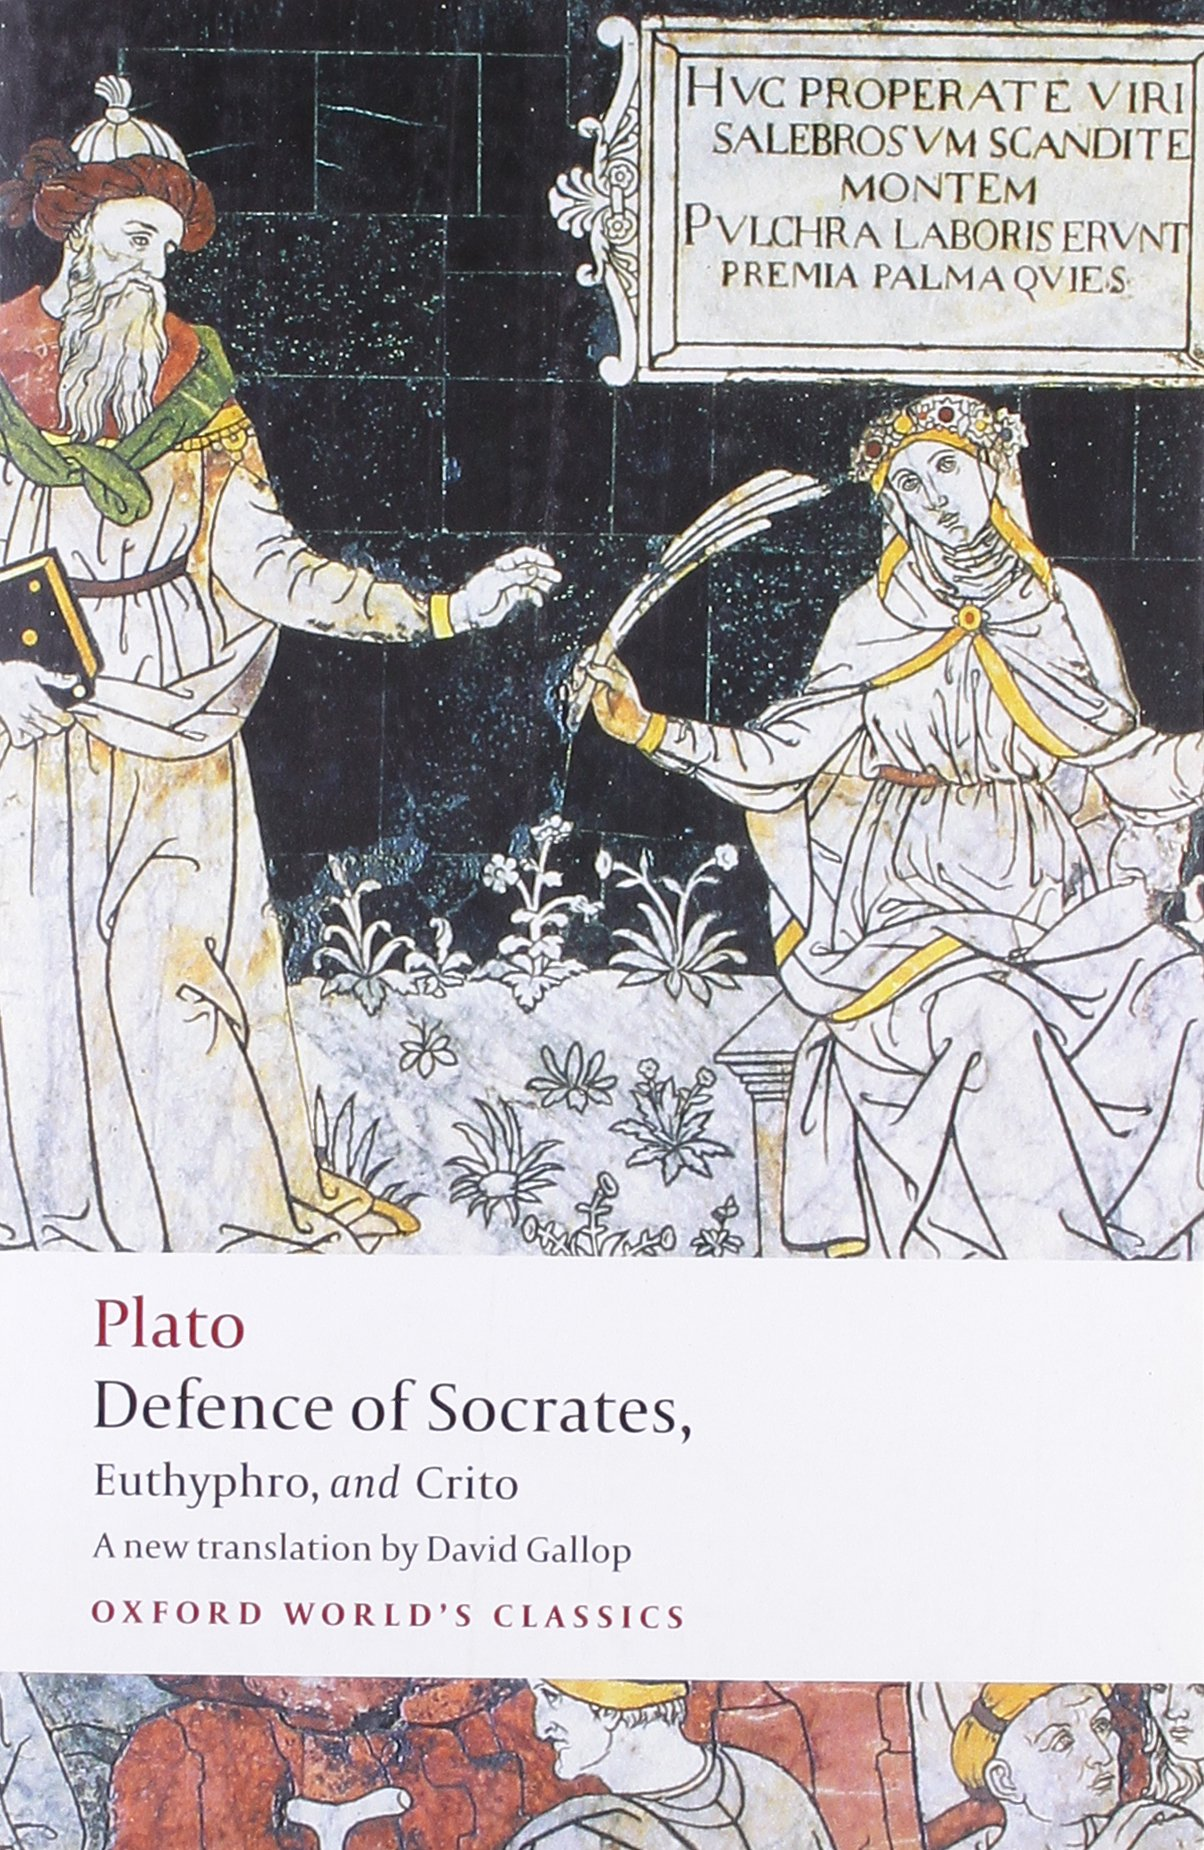 an analysis of platos apology of socrates as a philosophical text